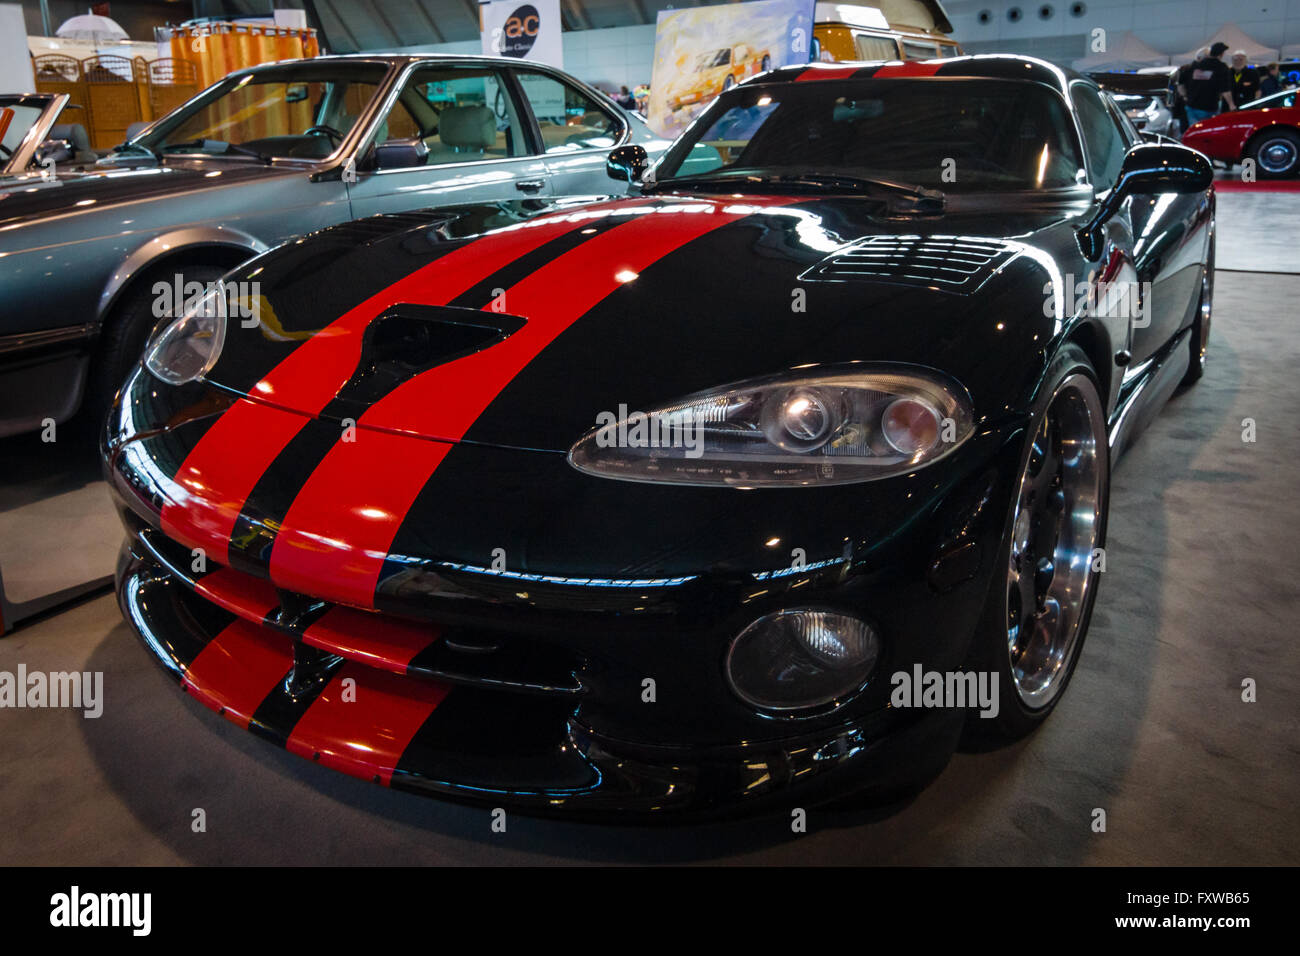 Stuttgart germany march 17 2016 sports car dodge viper gts 1999